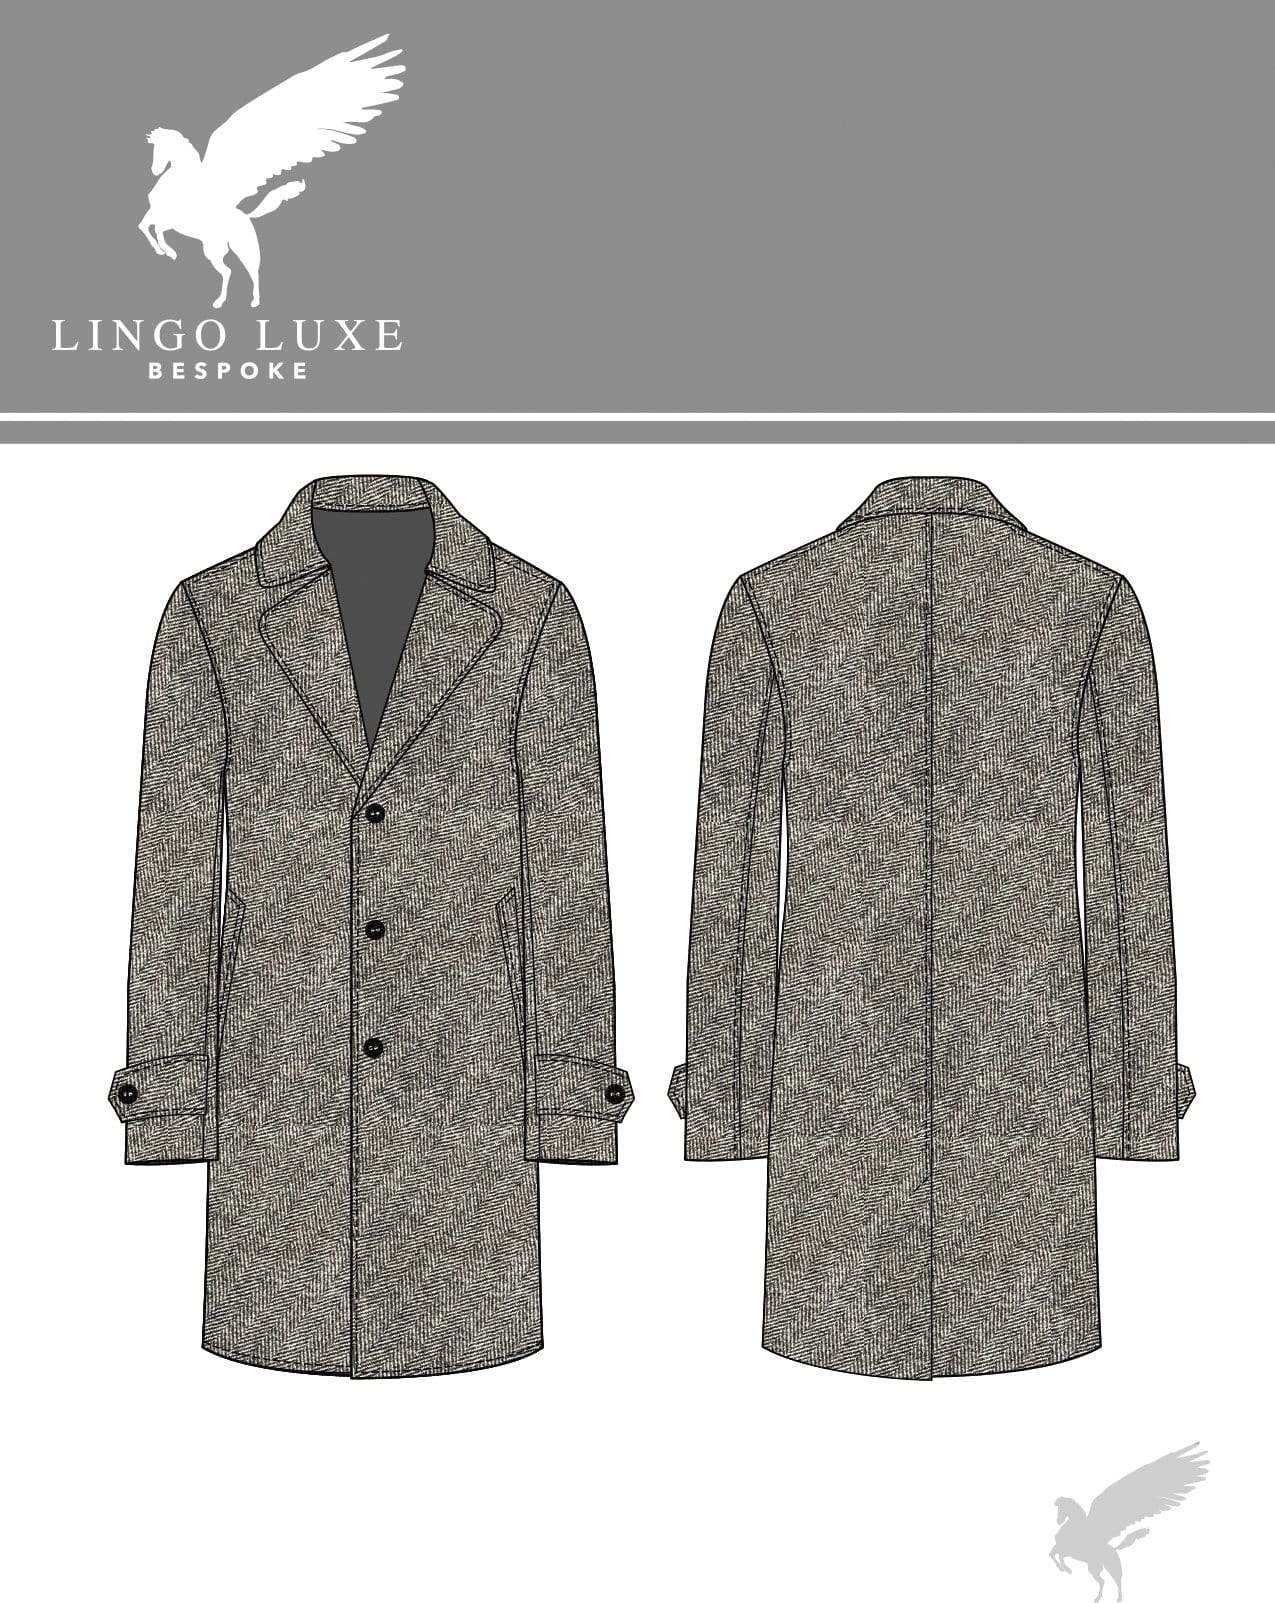 Outerwear | Lingo Luxe The Stately Overcoat | Grey Herring-Lingo Luxe Bespoke